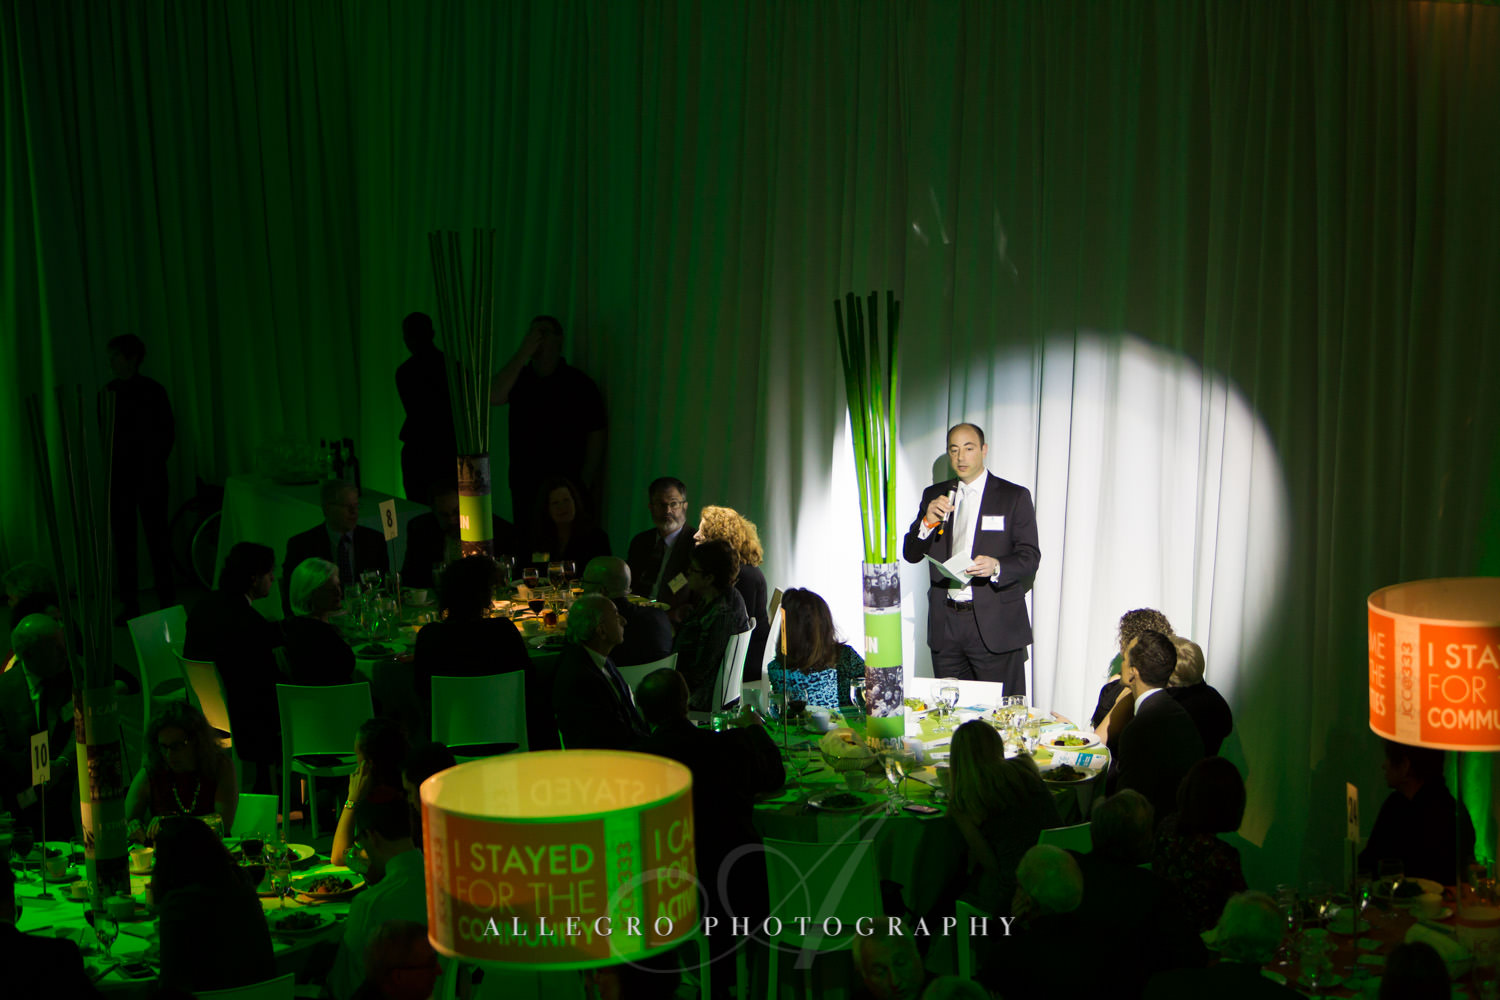 Speaker at nonprofit event for JCC@333 photographed by Allegro Photography